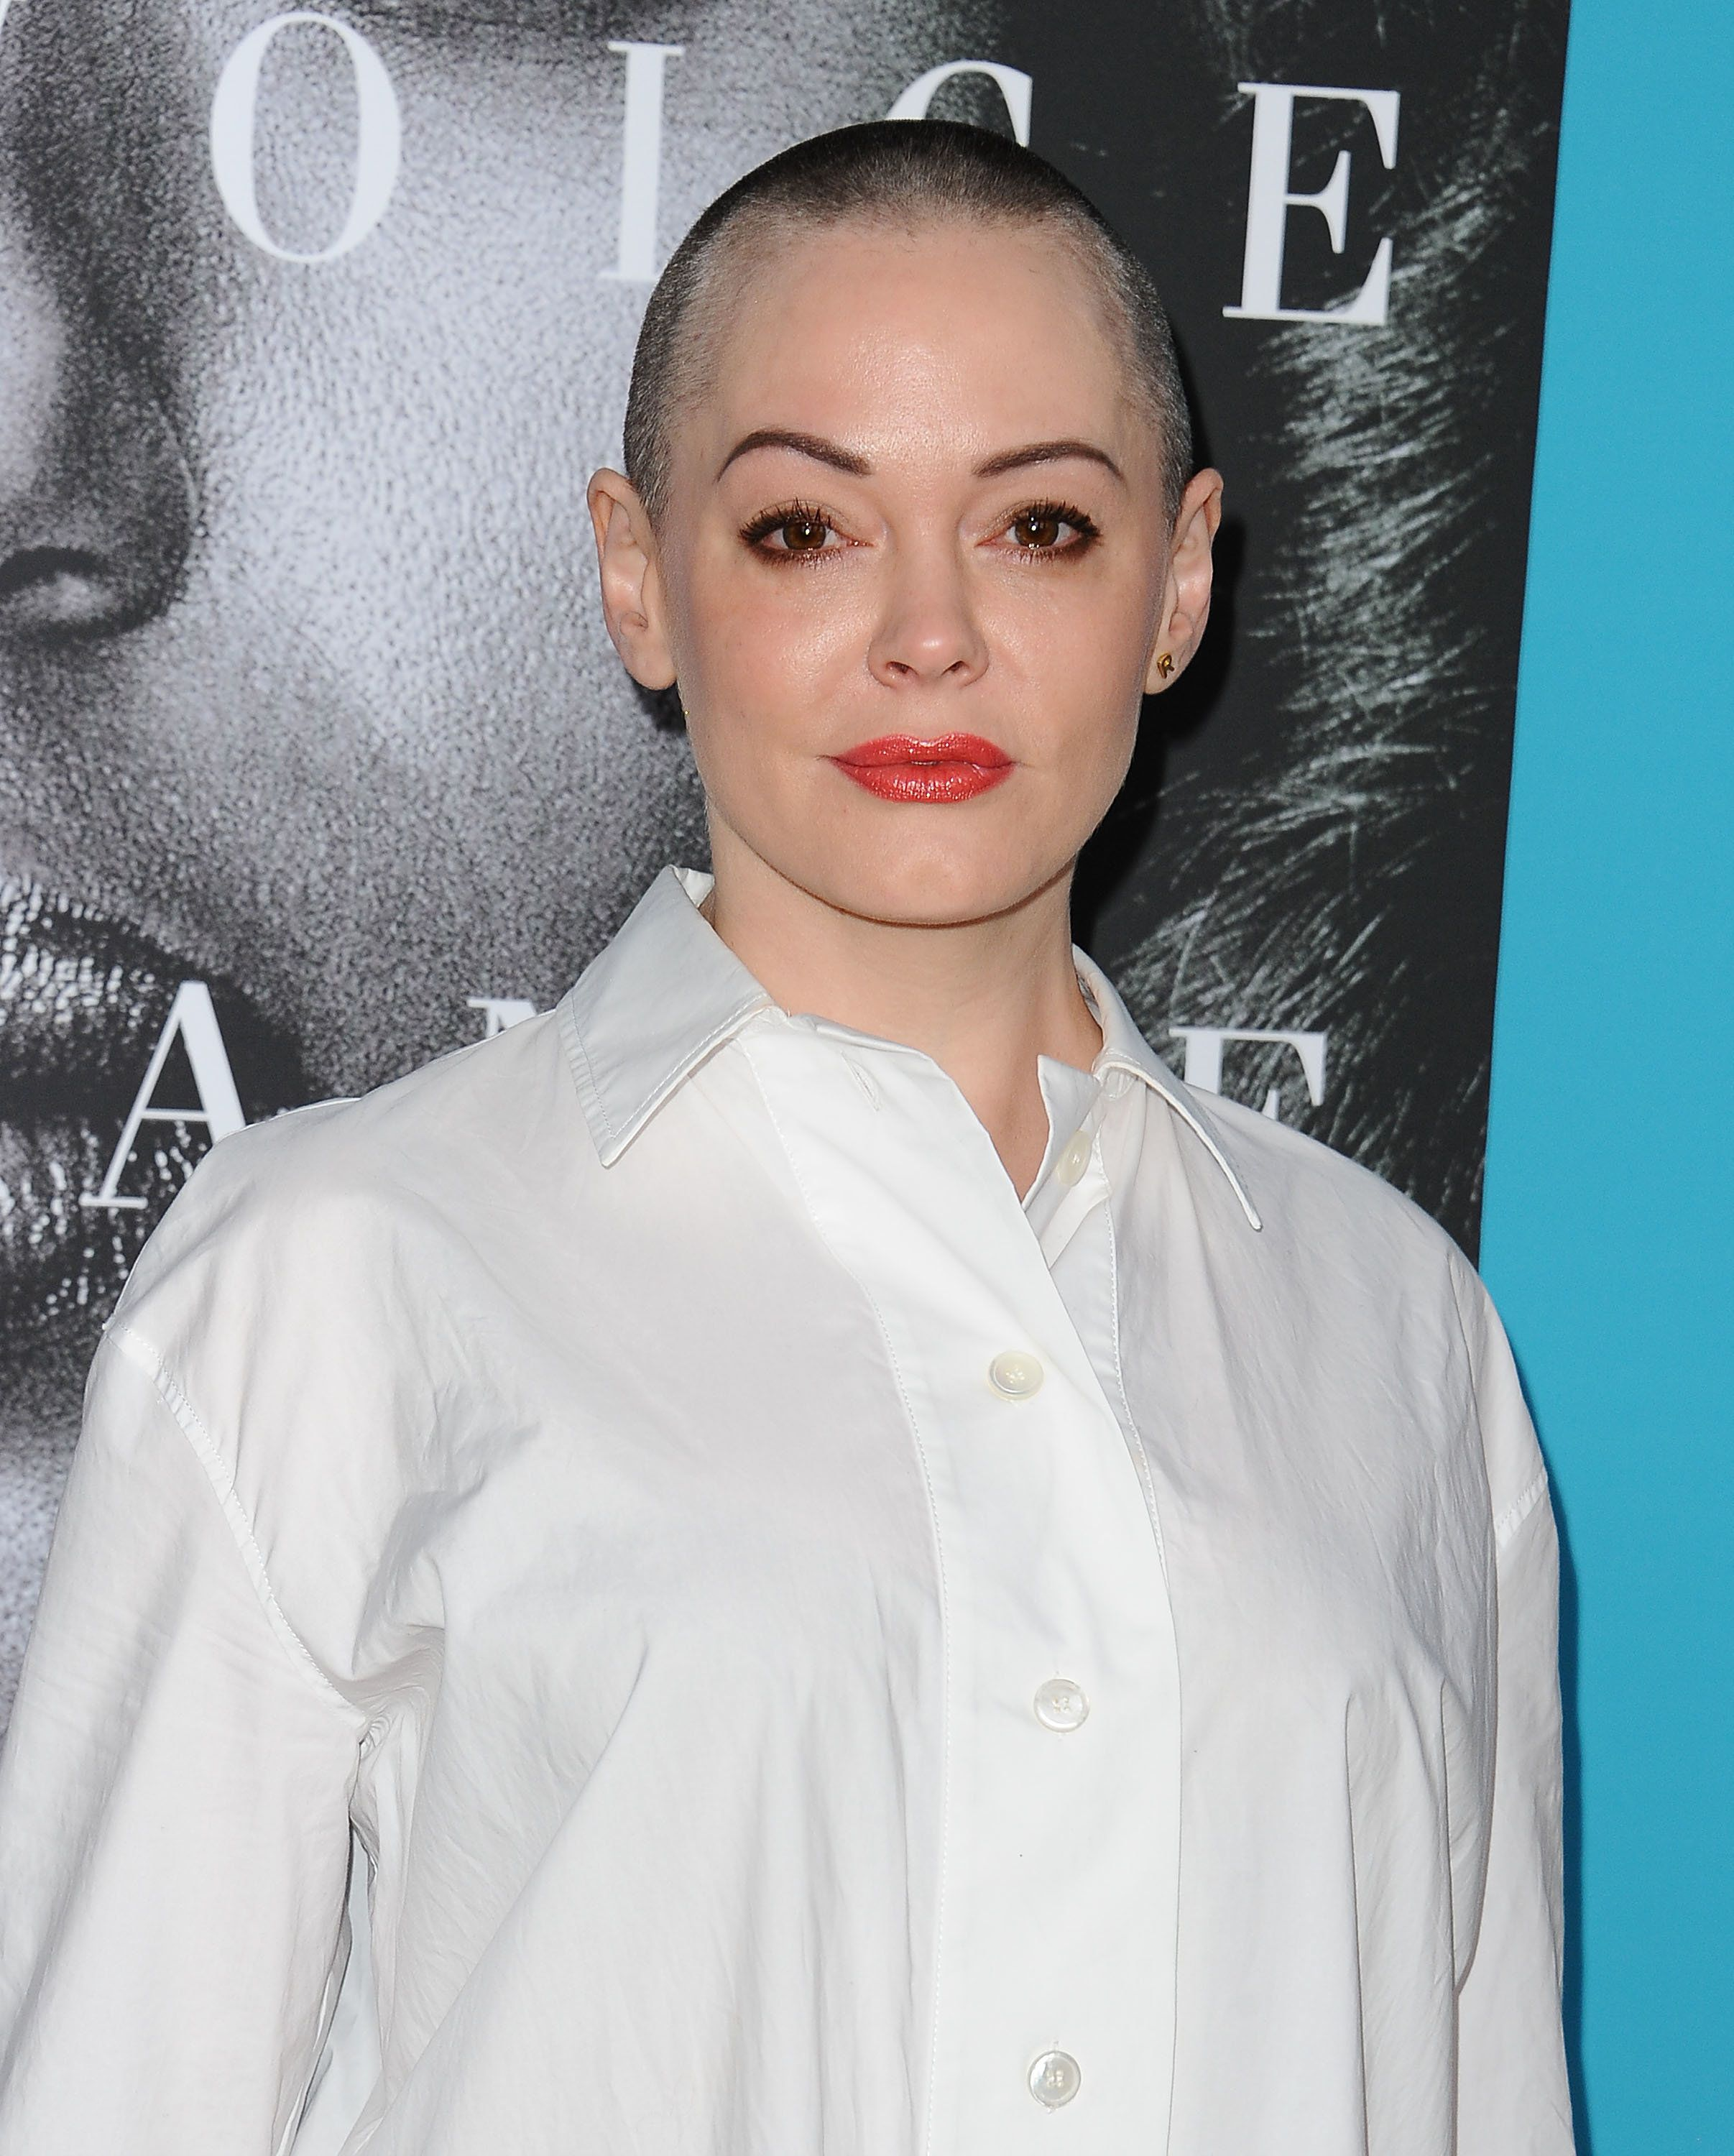 Rose McGowan Accuses Harvey Weinstein of Rape, Claims Amazon Studios Ignored Her